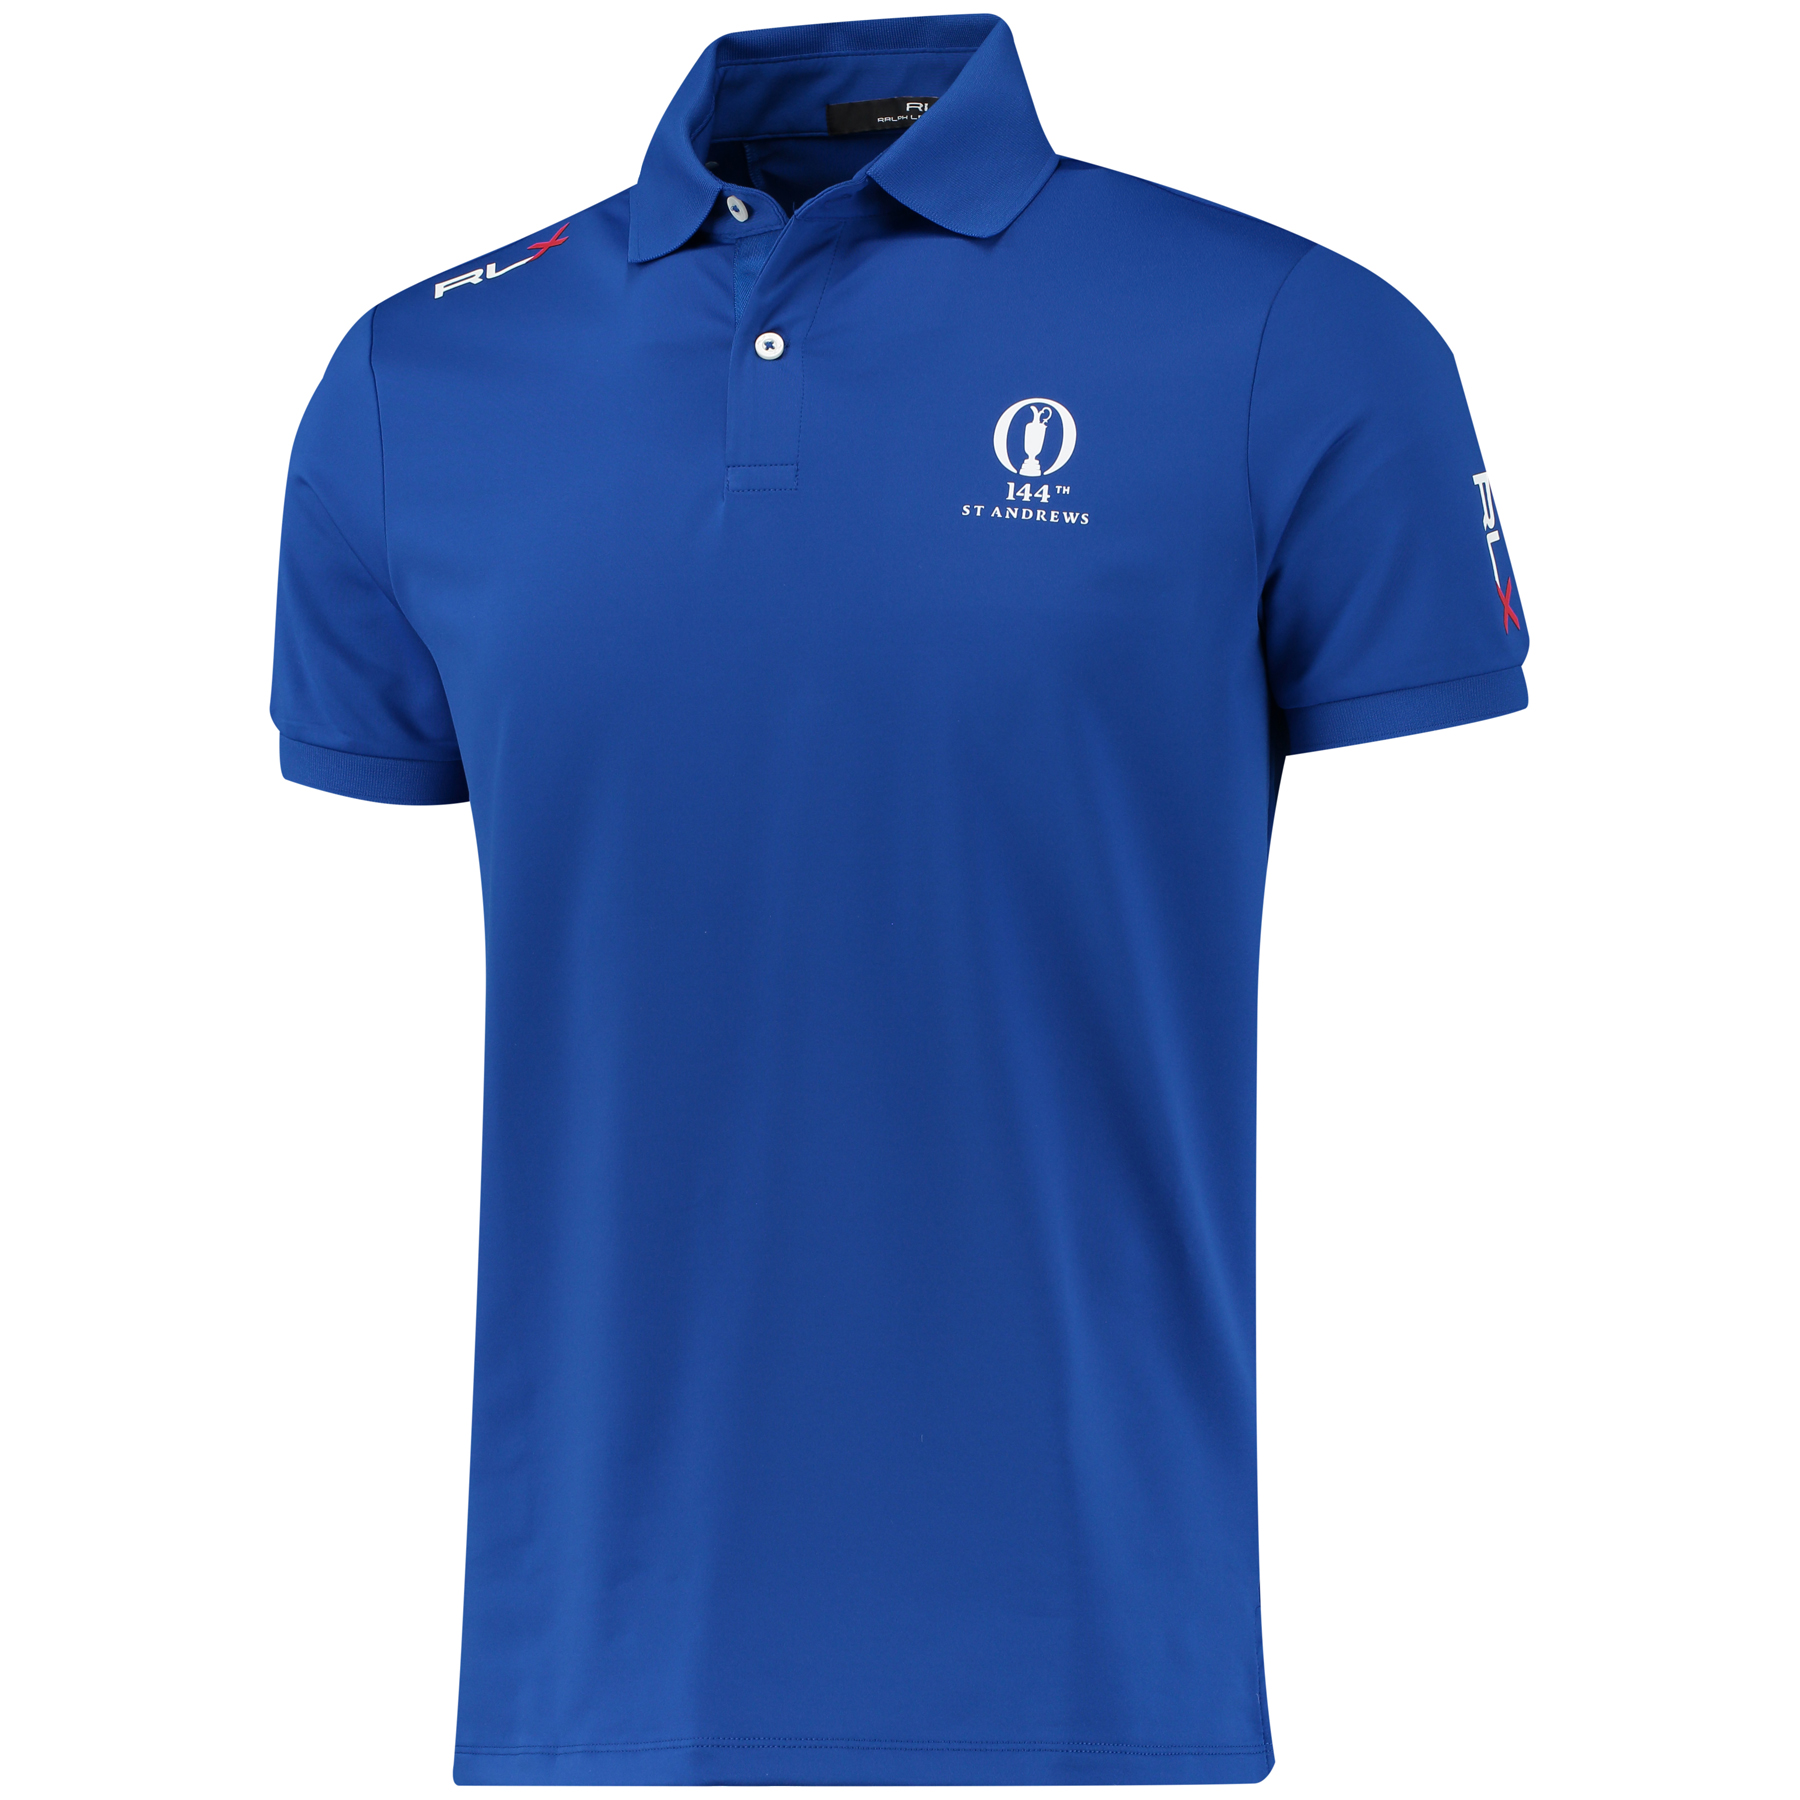 The Open 144th St Andrews RLX Polo - Sapphire Star